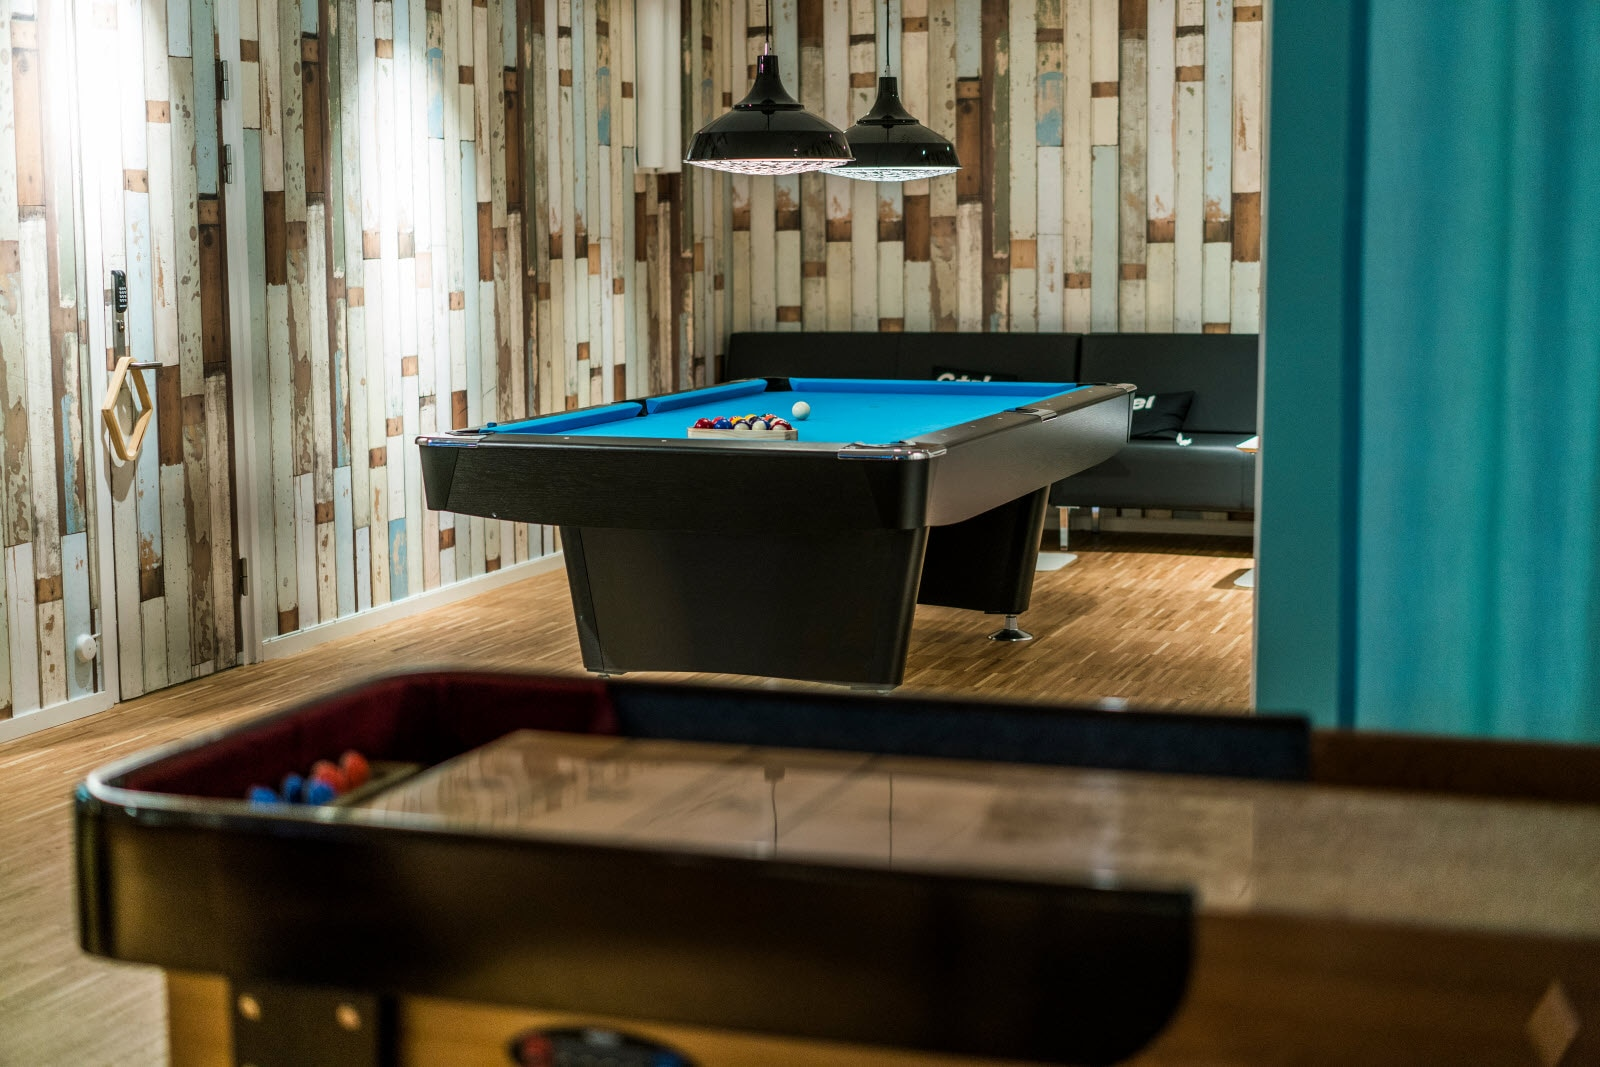 Scandic_Kista_pool_table.jpg